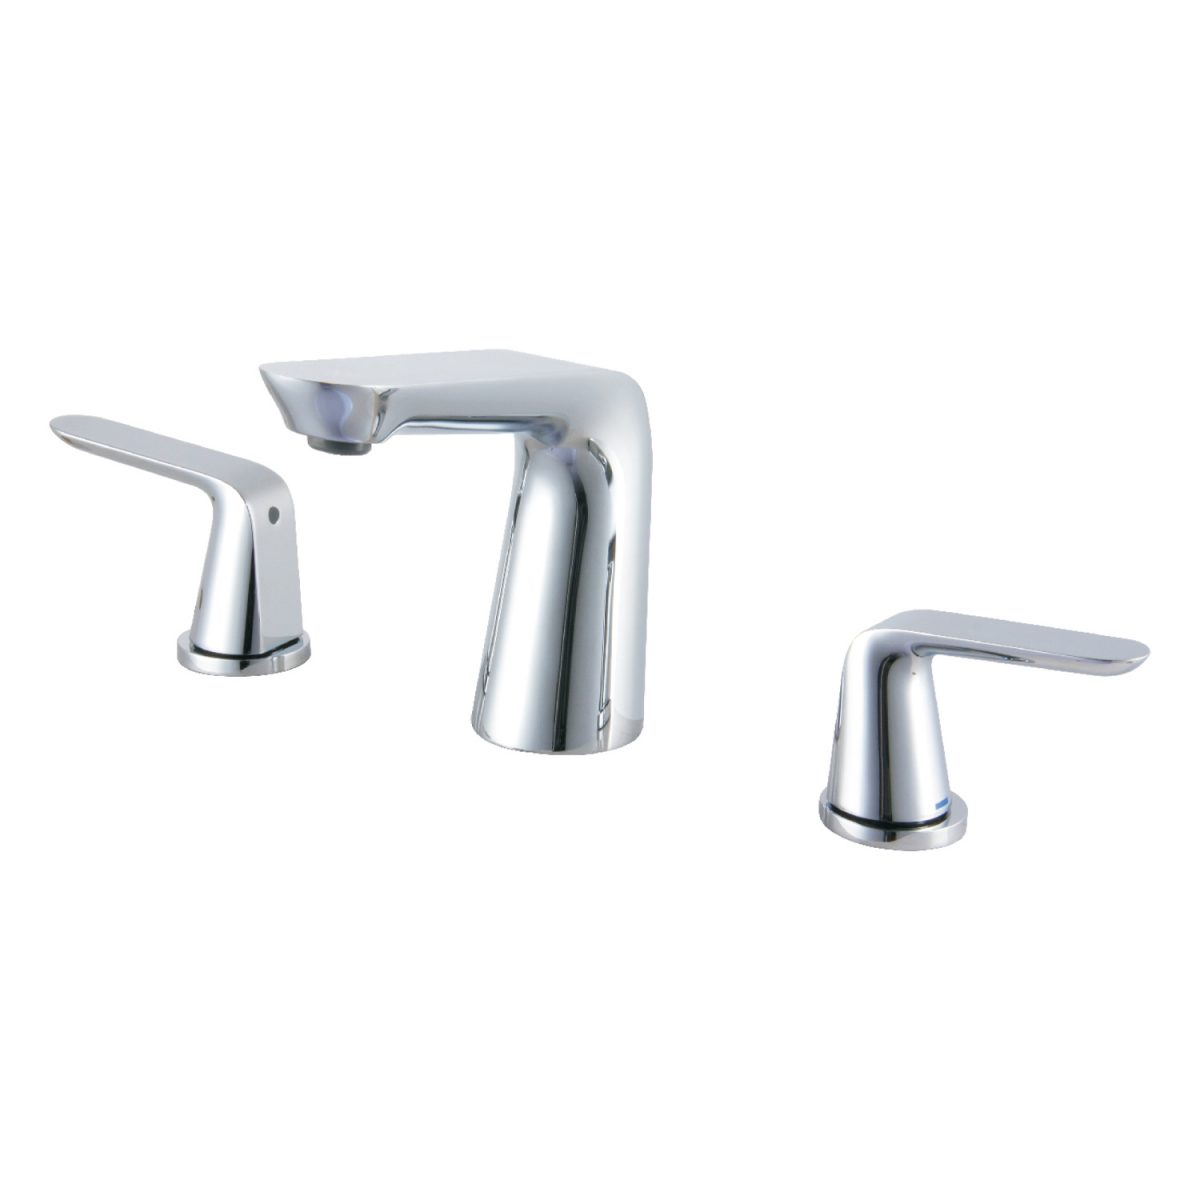 Wide Spread Lavatory Faucet – Chrome – F01 107 01